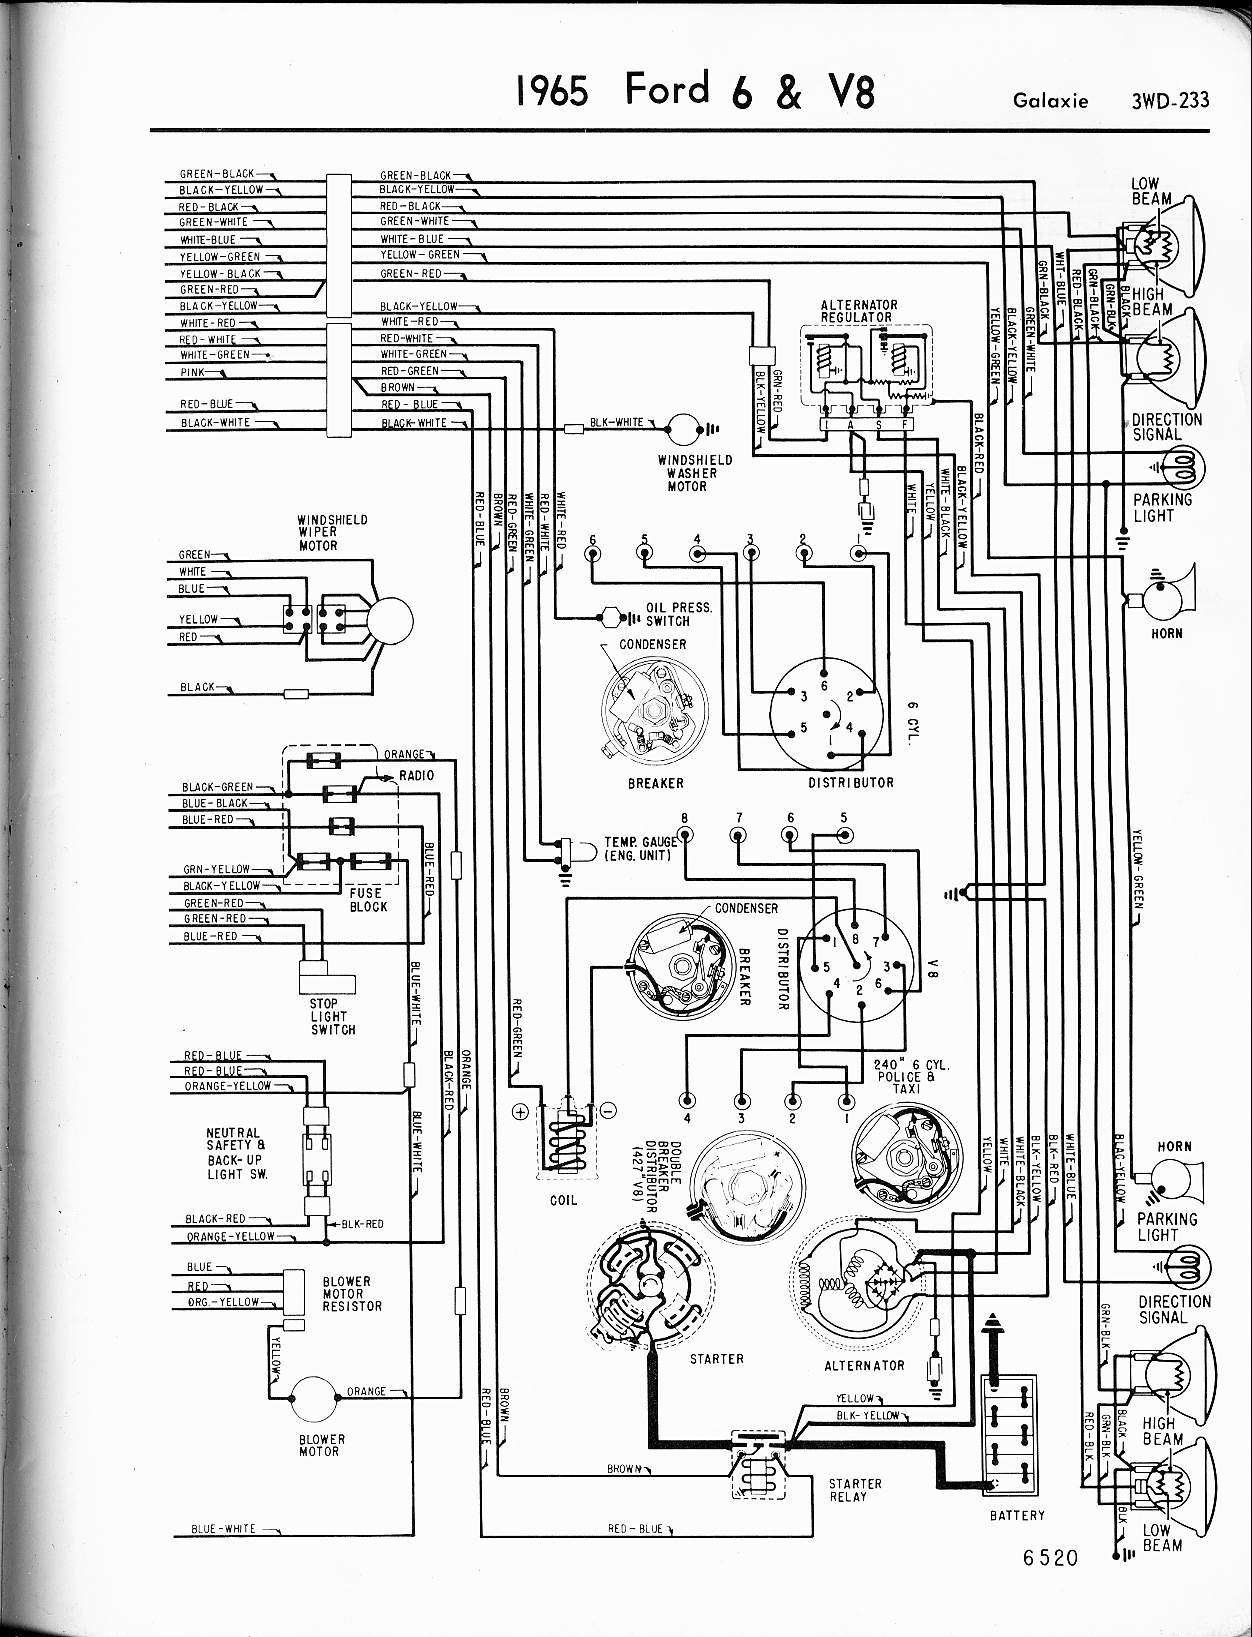 [DIAGRAM_38DE]  65 Econoline Wiring Diagram For Dash - Air Conditioning Wiring Diagram 1995  Mustang Gt for Wiring Diagram Schematics | 1966 Ford F100 Wiring Diagram |  | Wiring Diagram Schematics